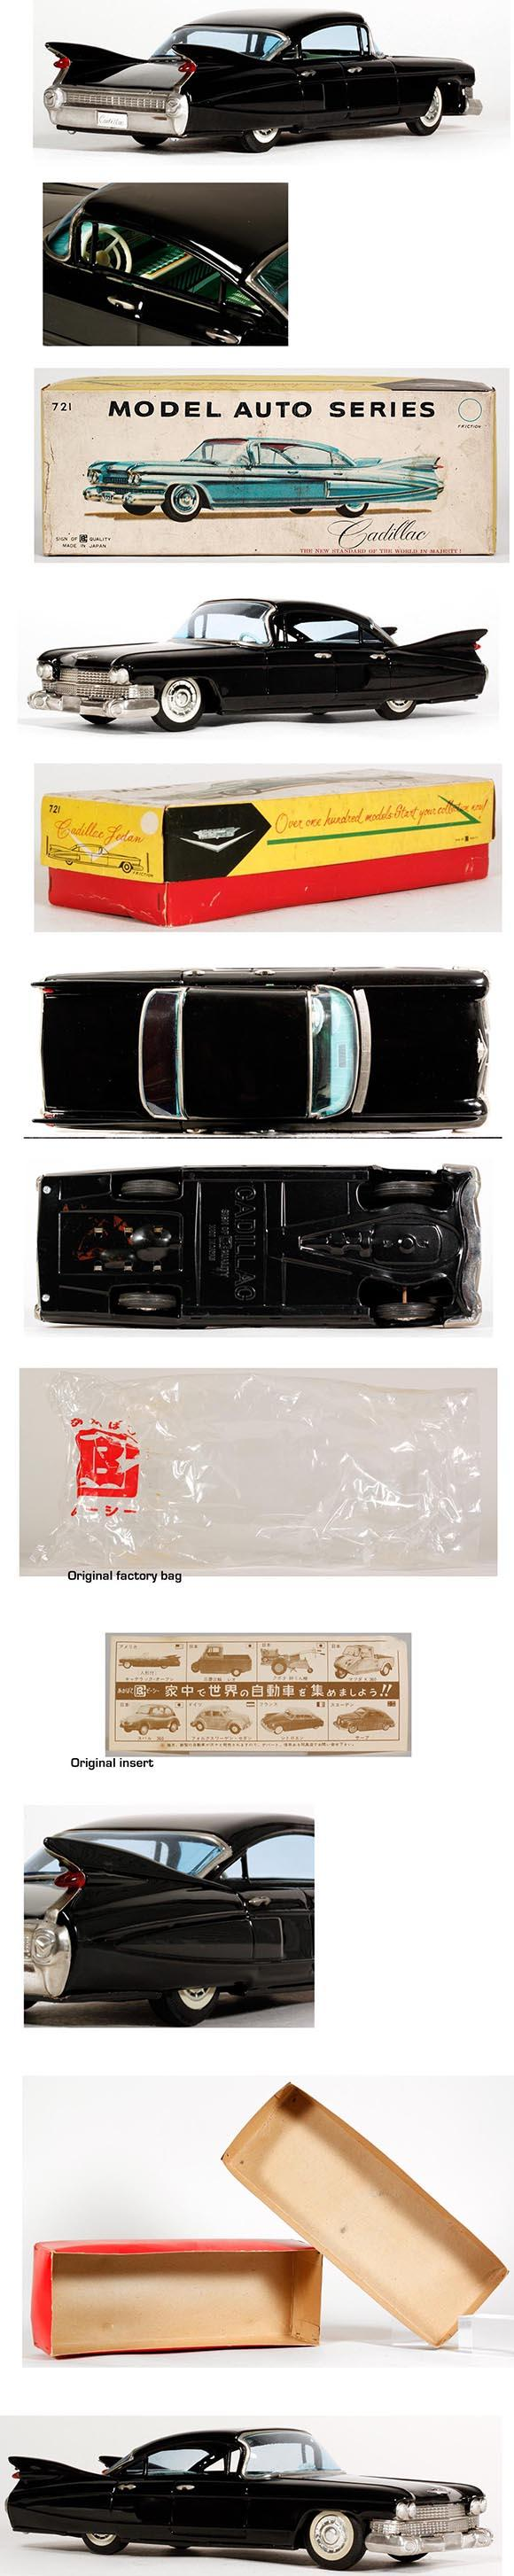 1959 Bandai, Cadillac Sedan de Ville in Original Box